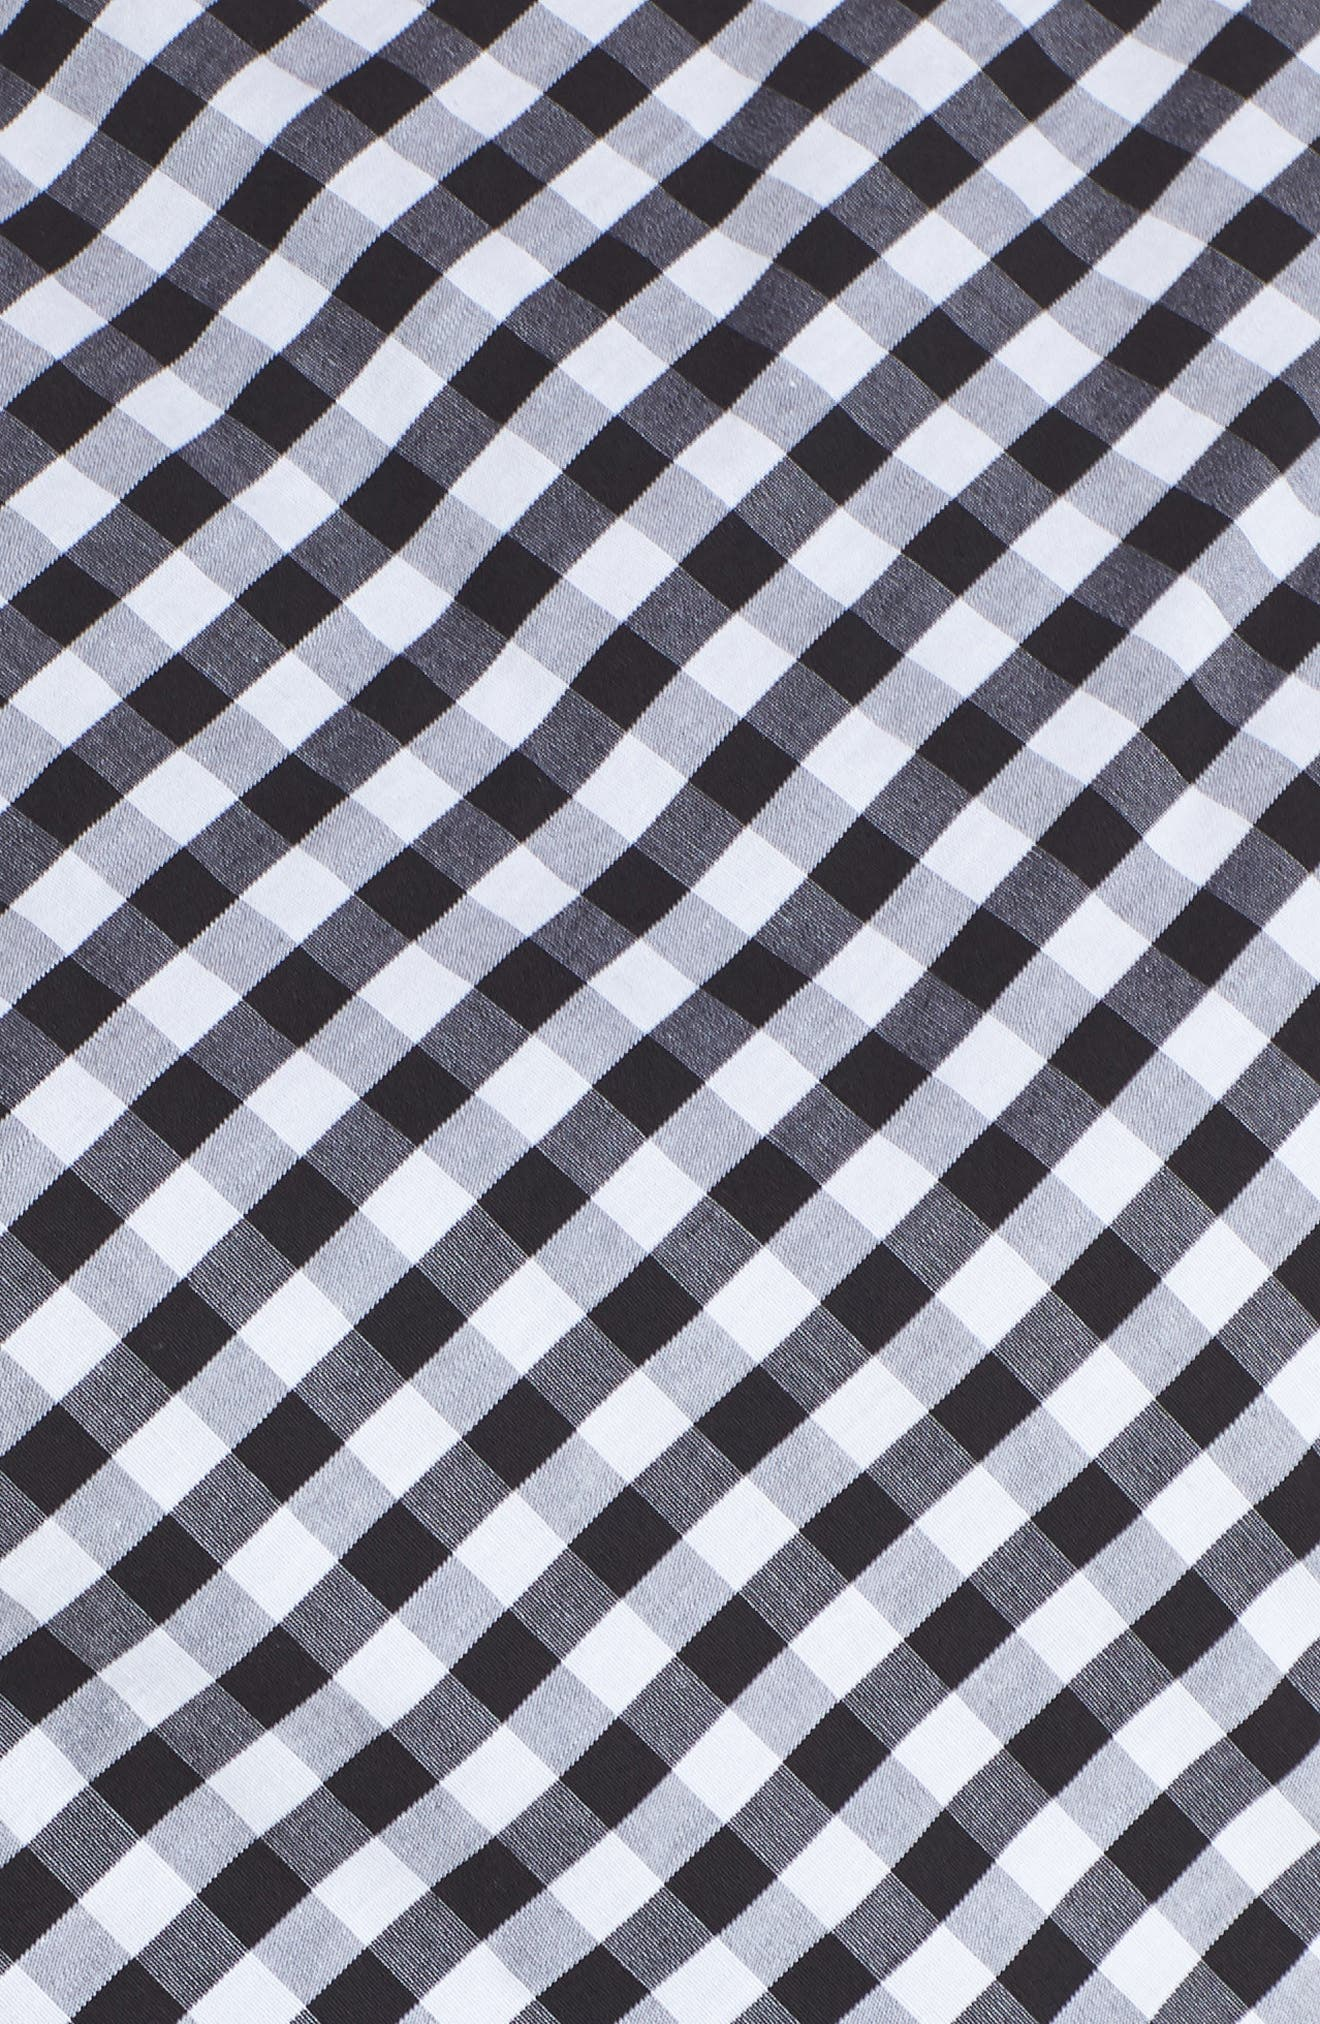 ADRIANNA PAPELL,                             Gingham Tie Front Midi Dress,                             Alternate thumbnail 6, color,                             002